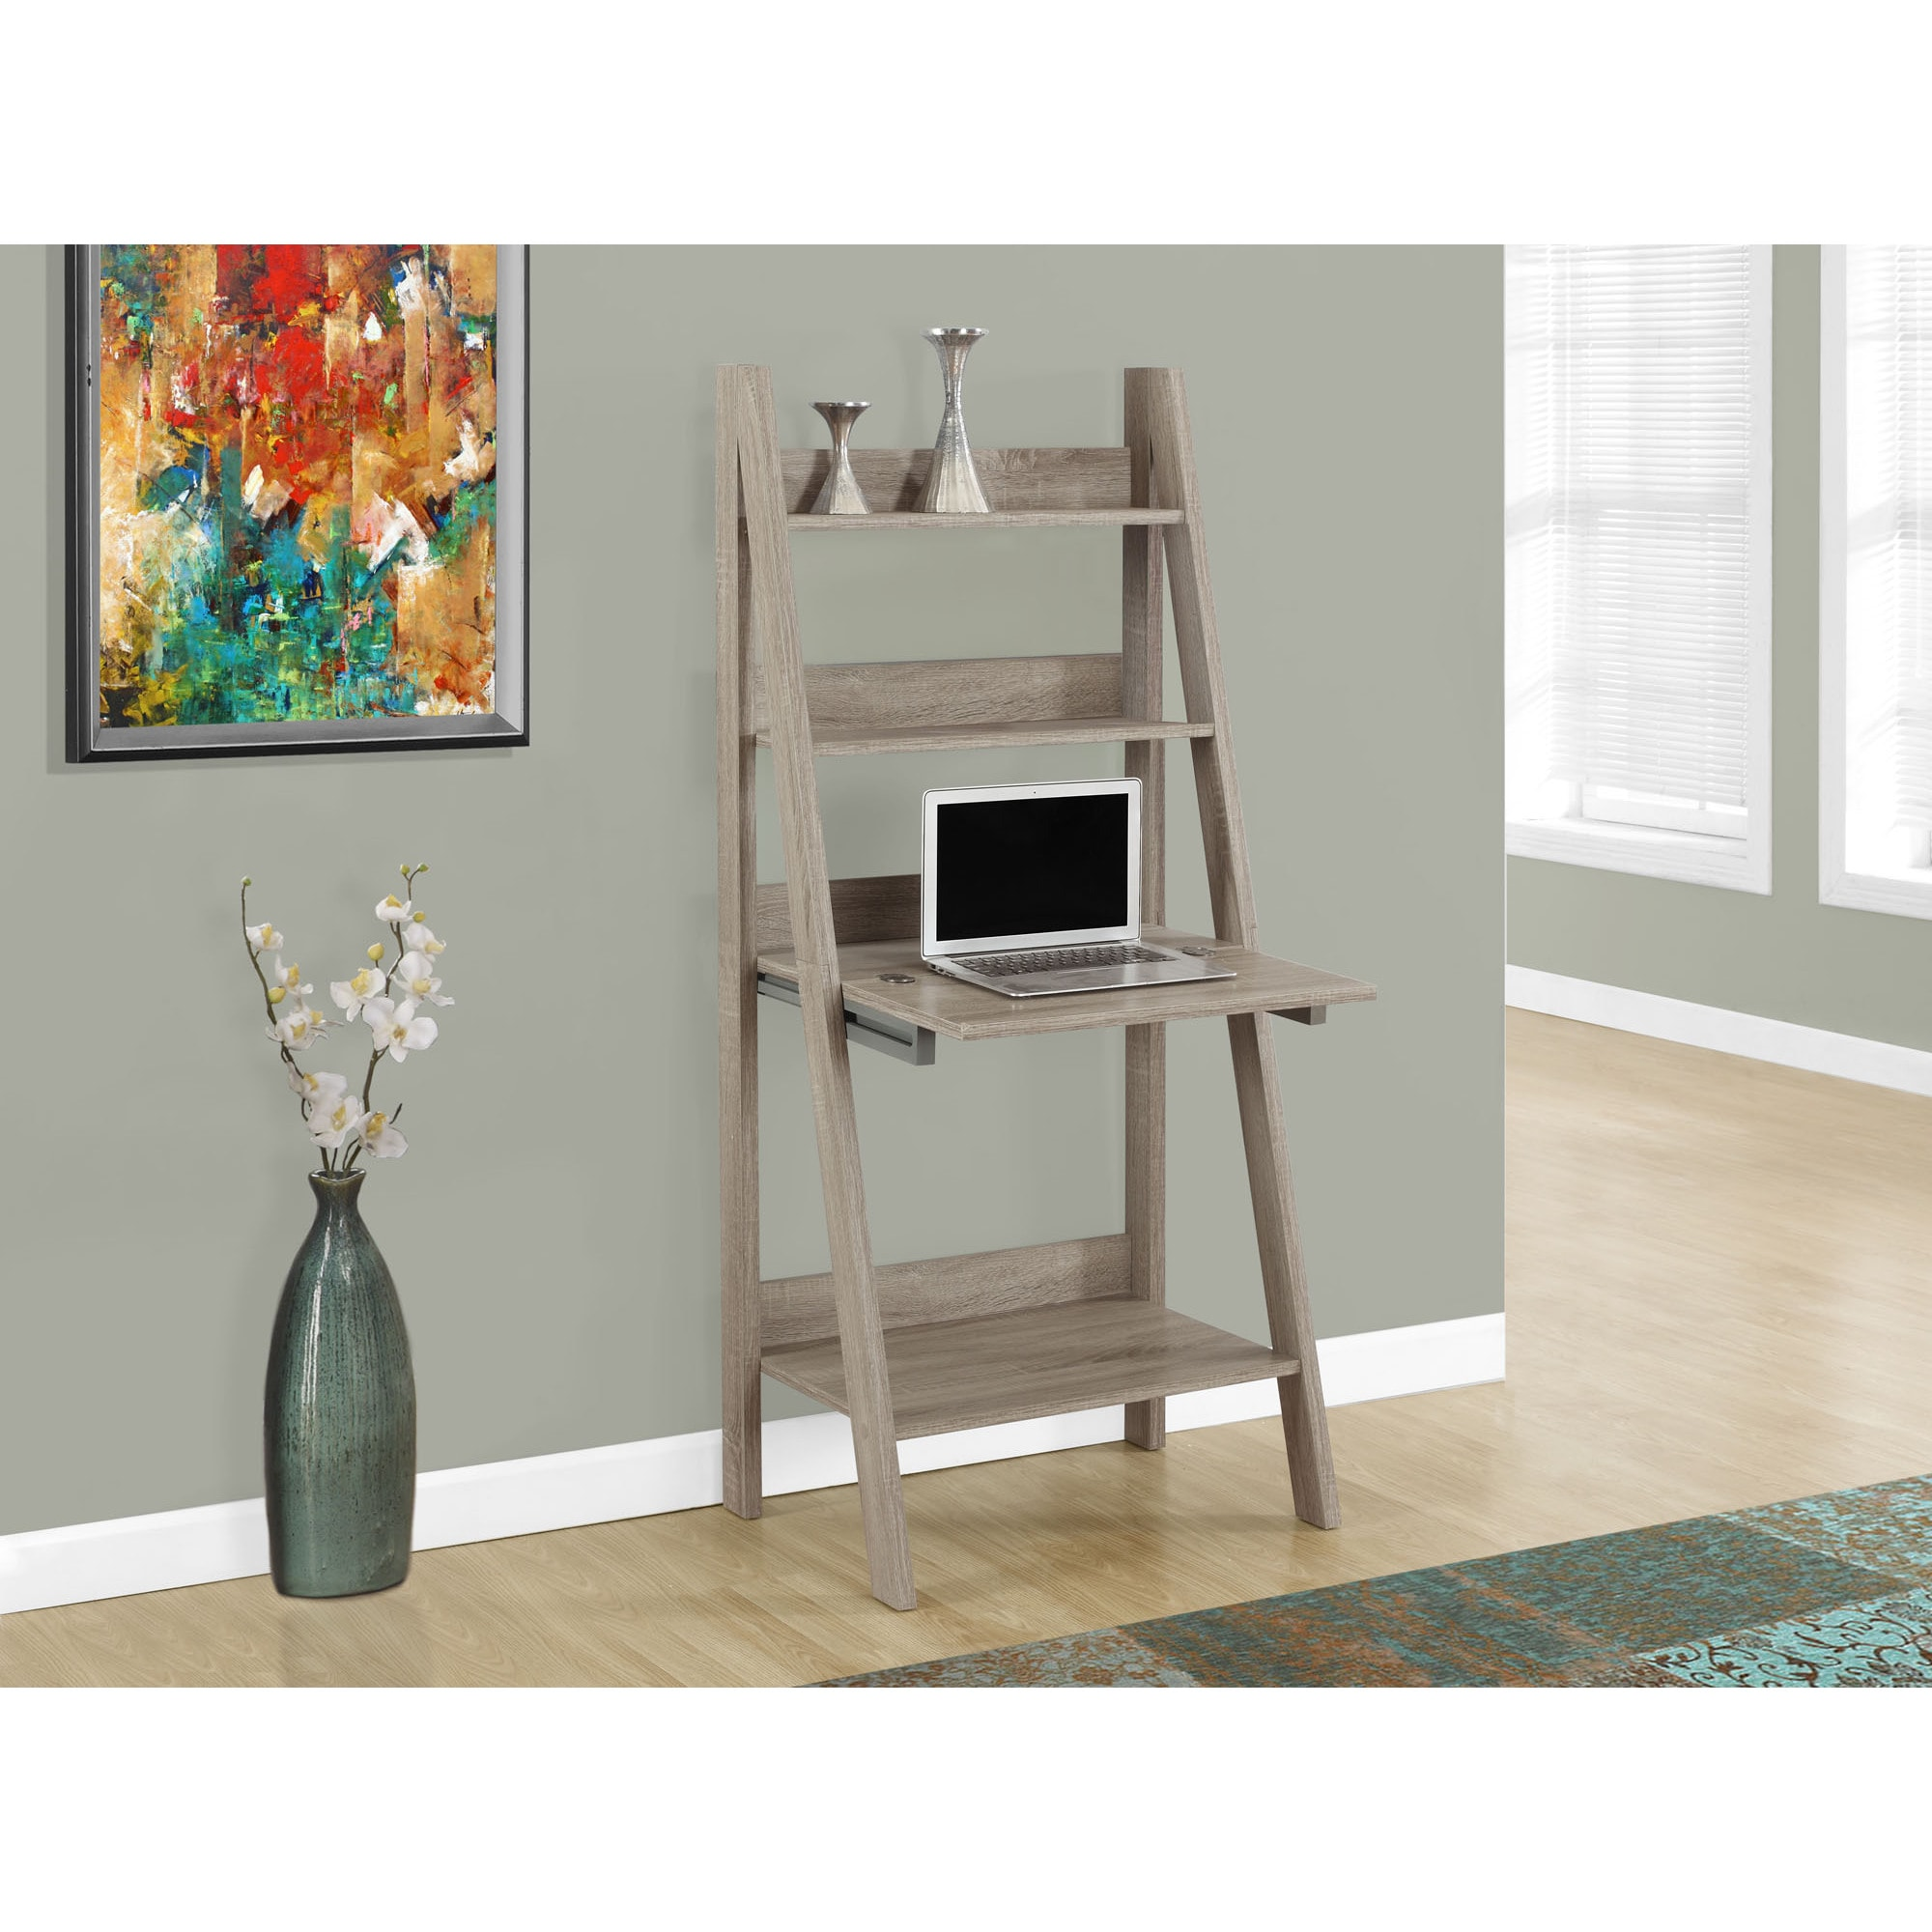 on sale bd7cd d196d Computer Desk/Dark Taupe Ladder Style